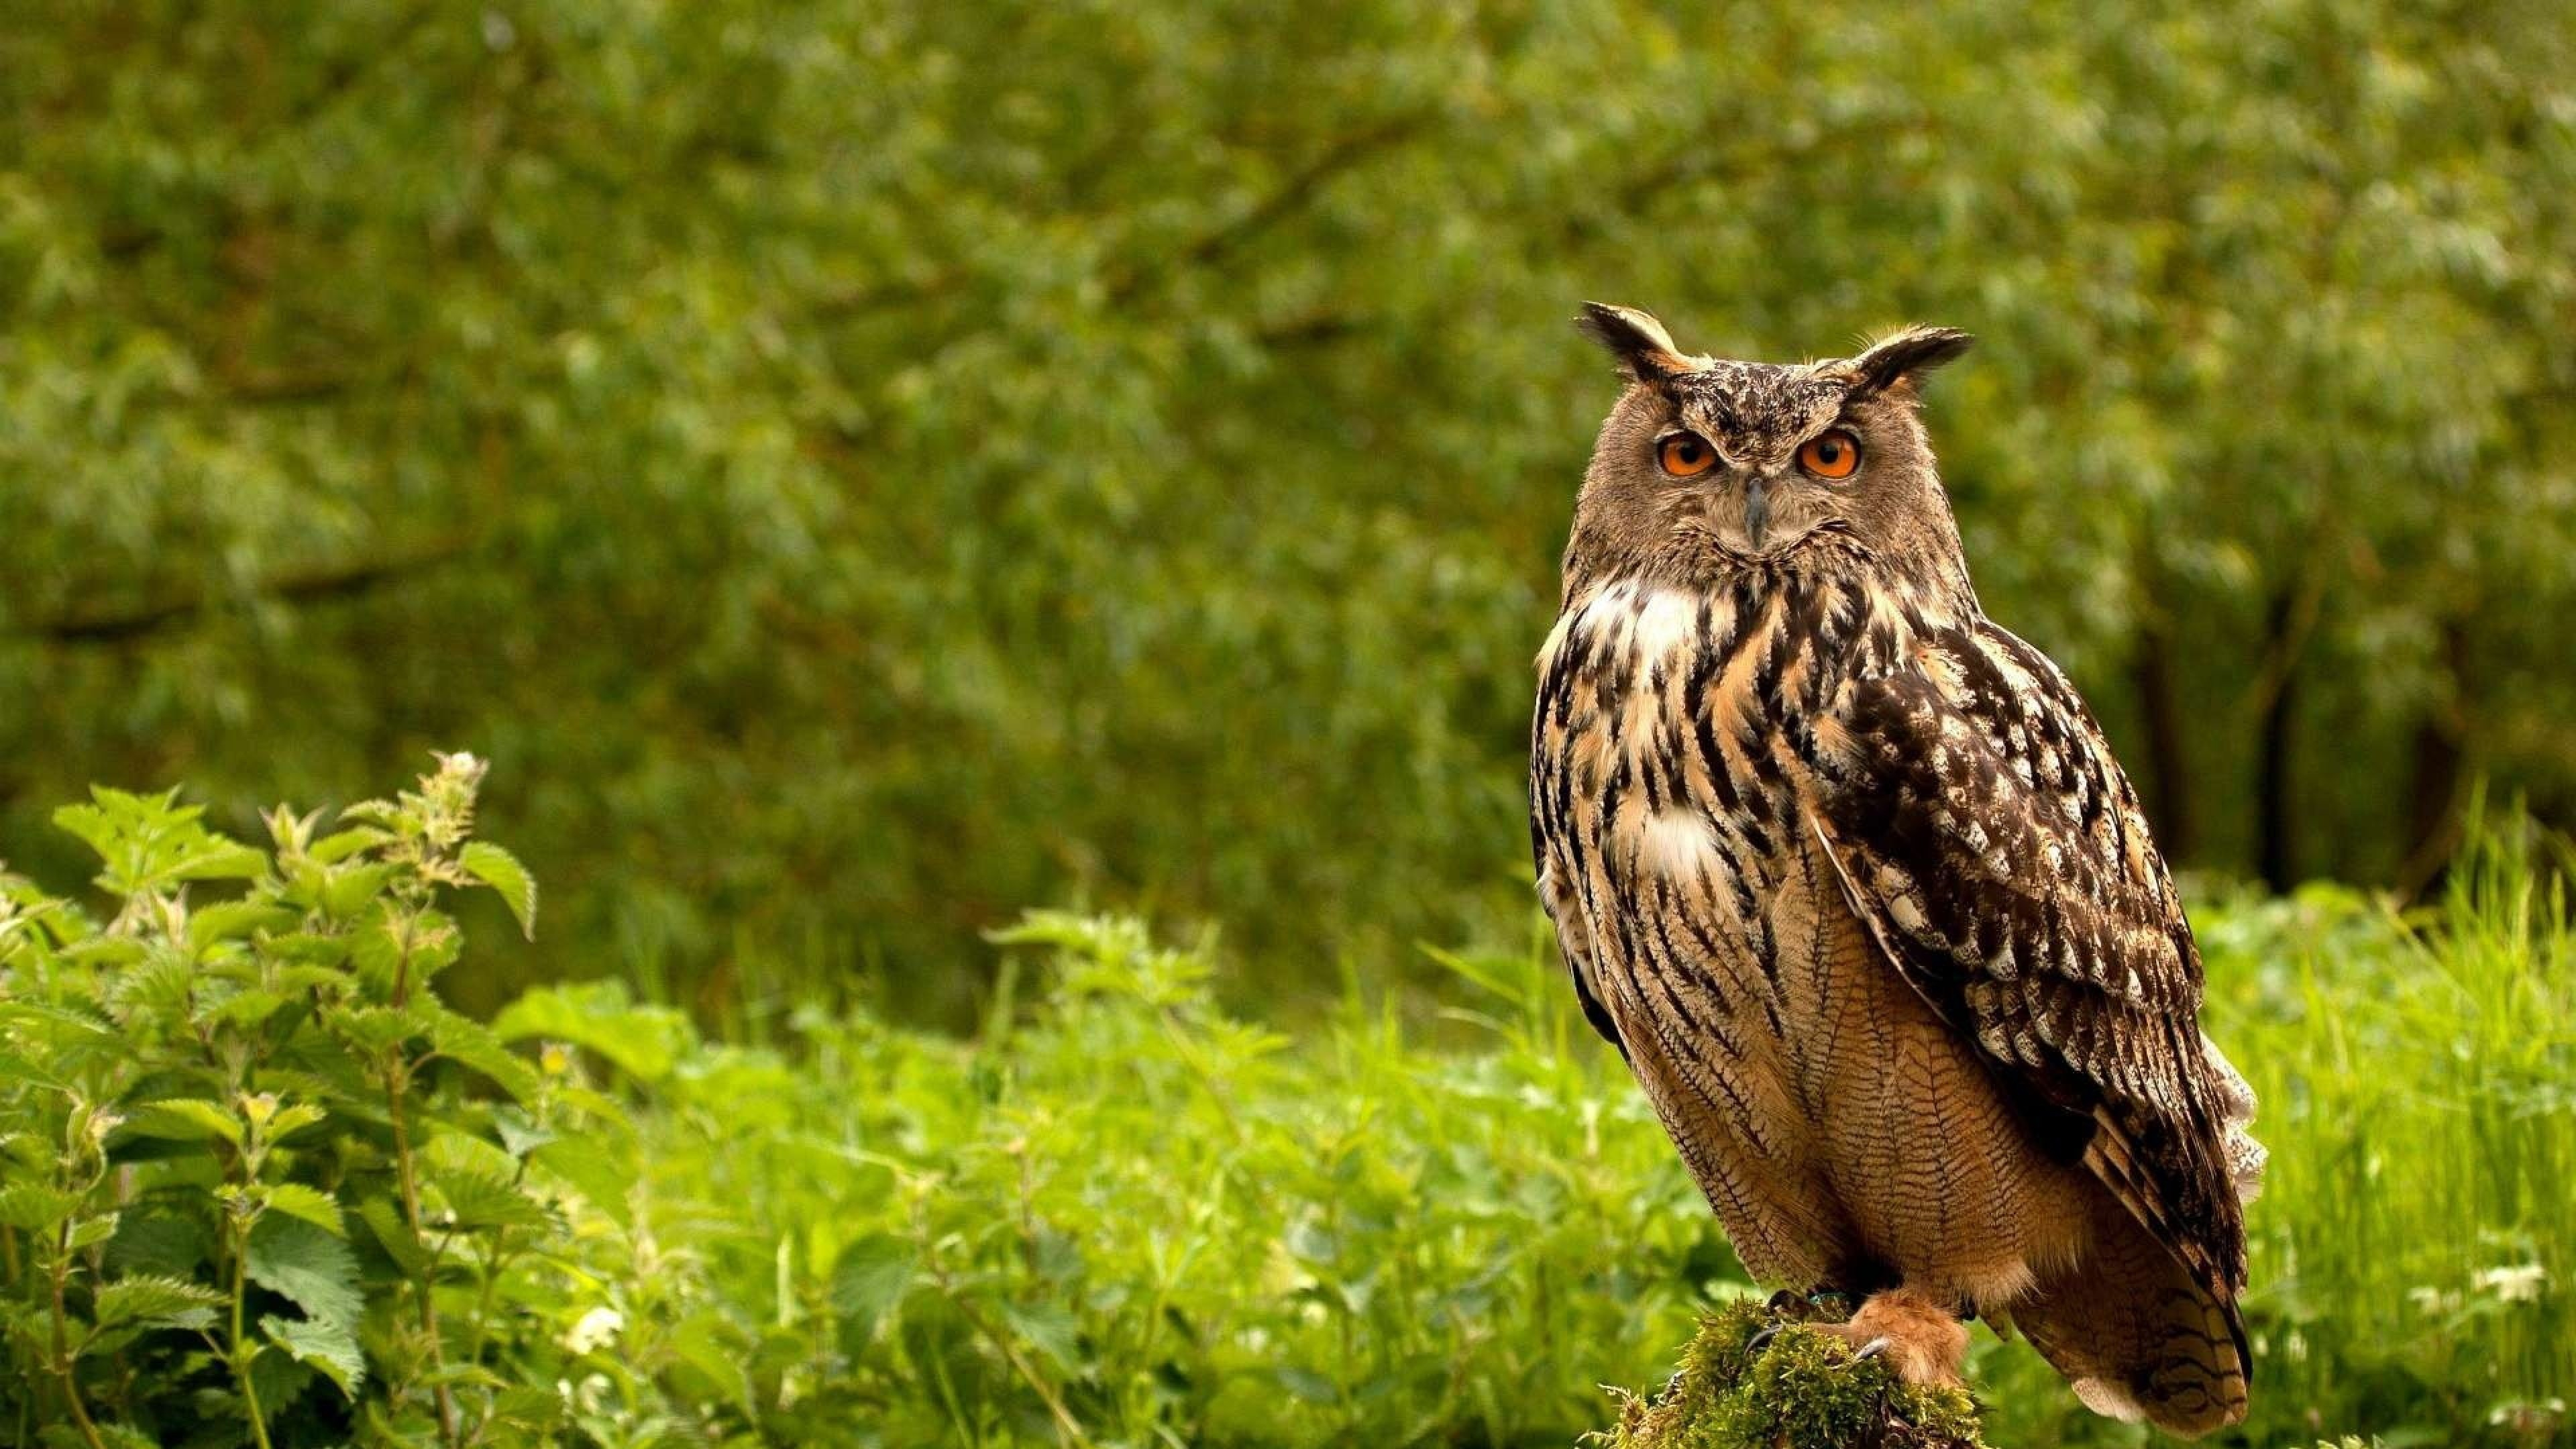 … 4k owls wallpapers high quality download free …